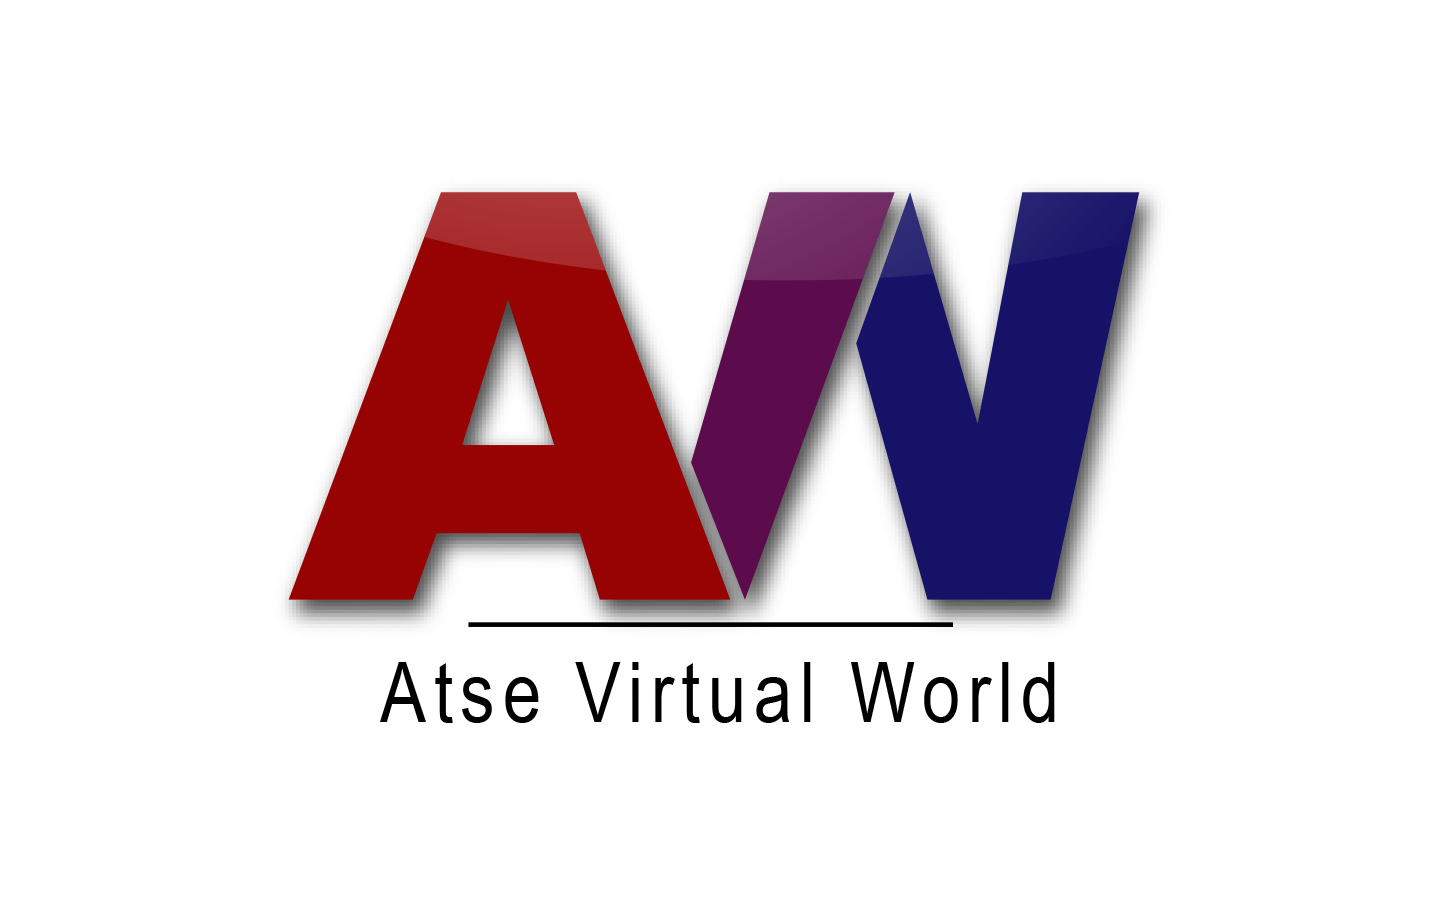 Atse Virtual World